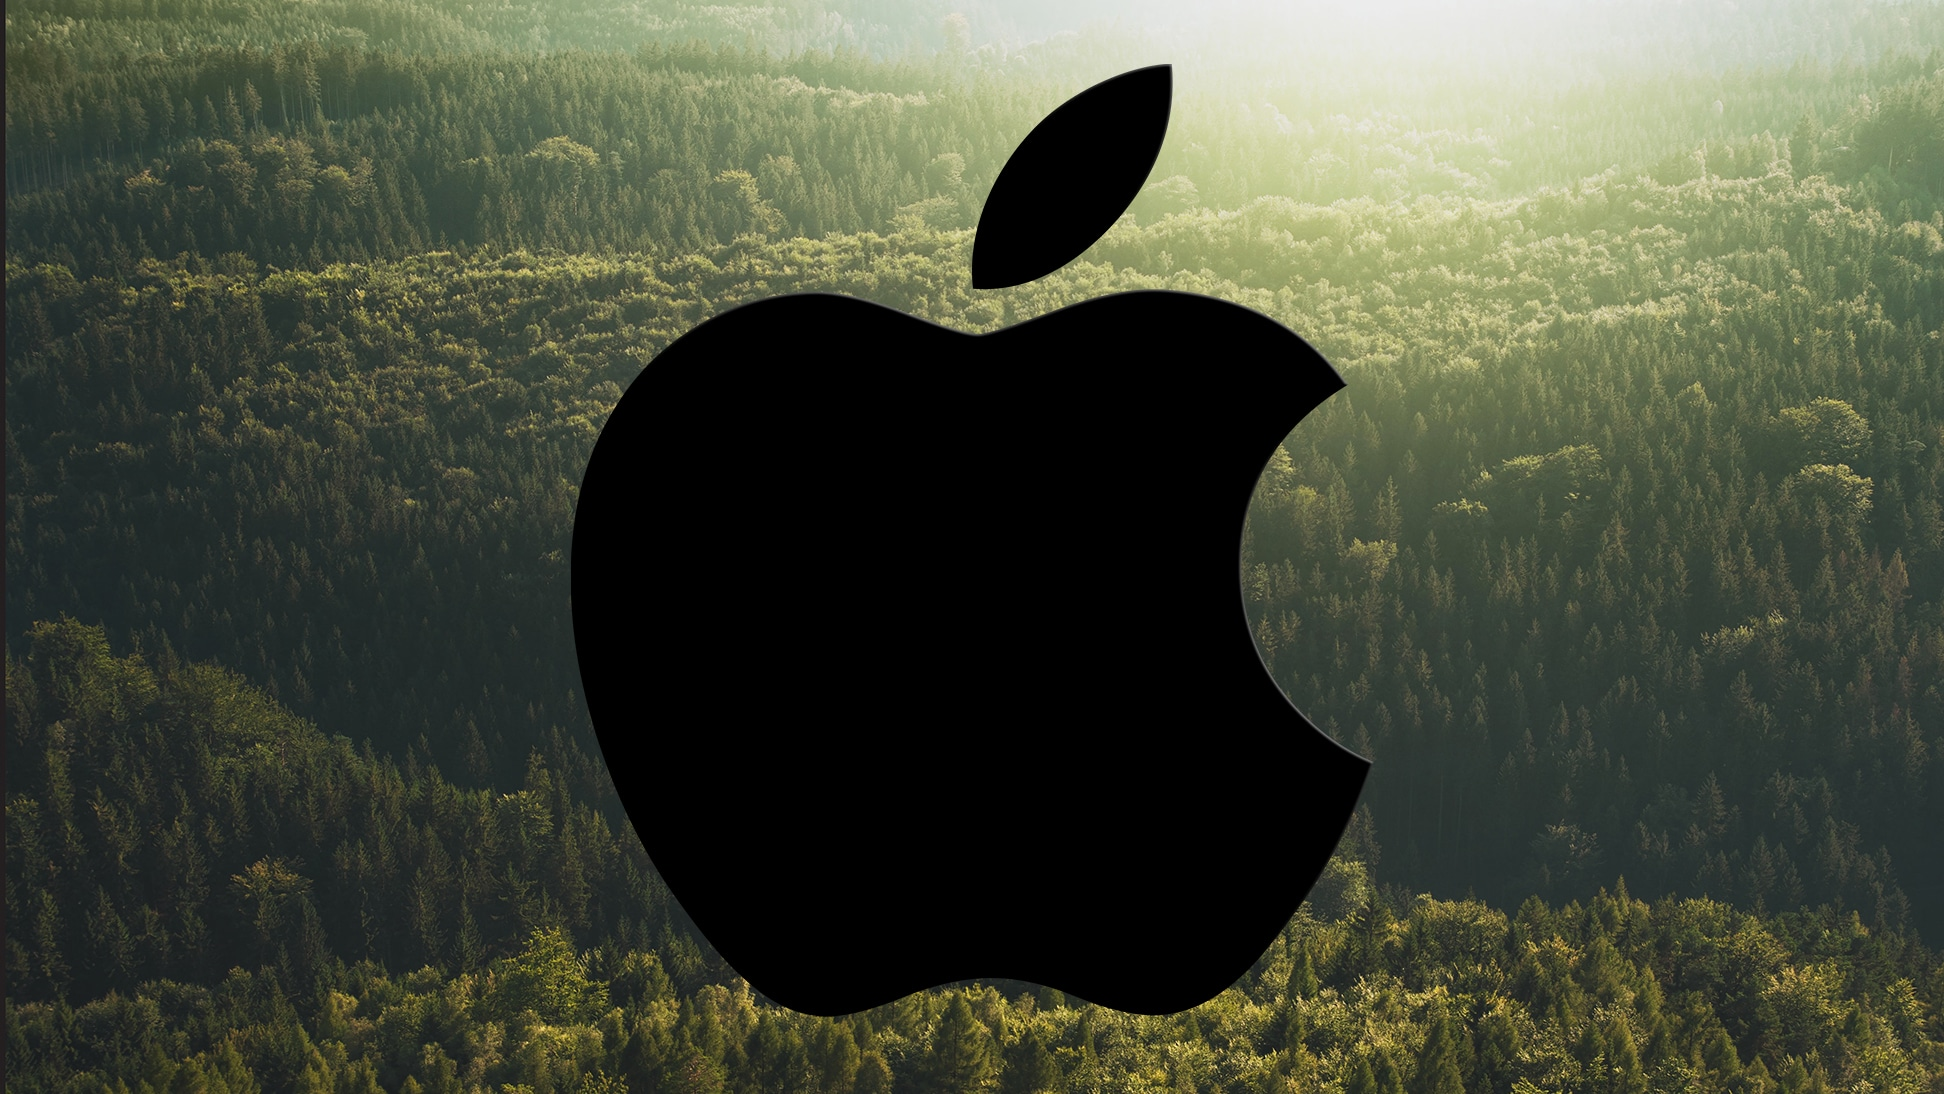 Logo da Apple sobre uma floresta